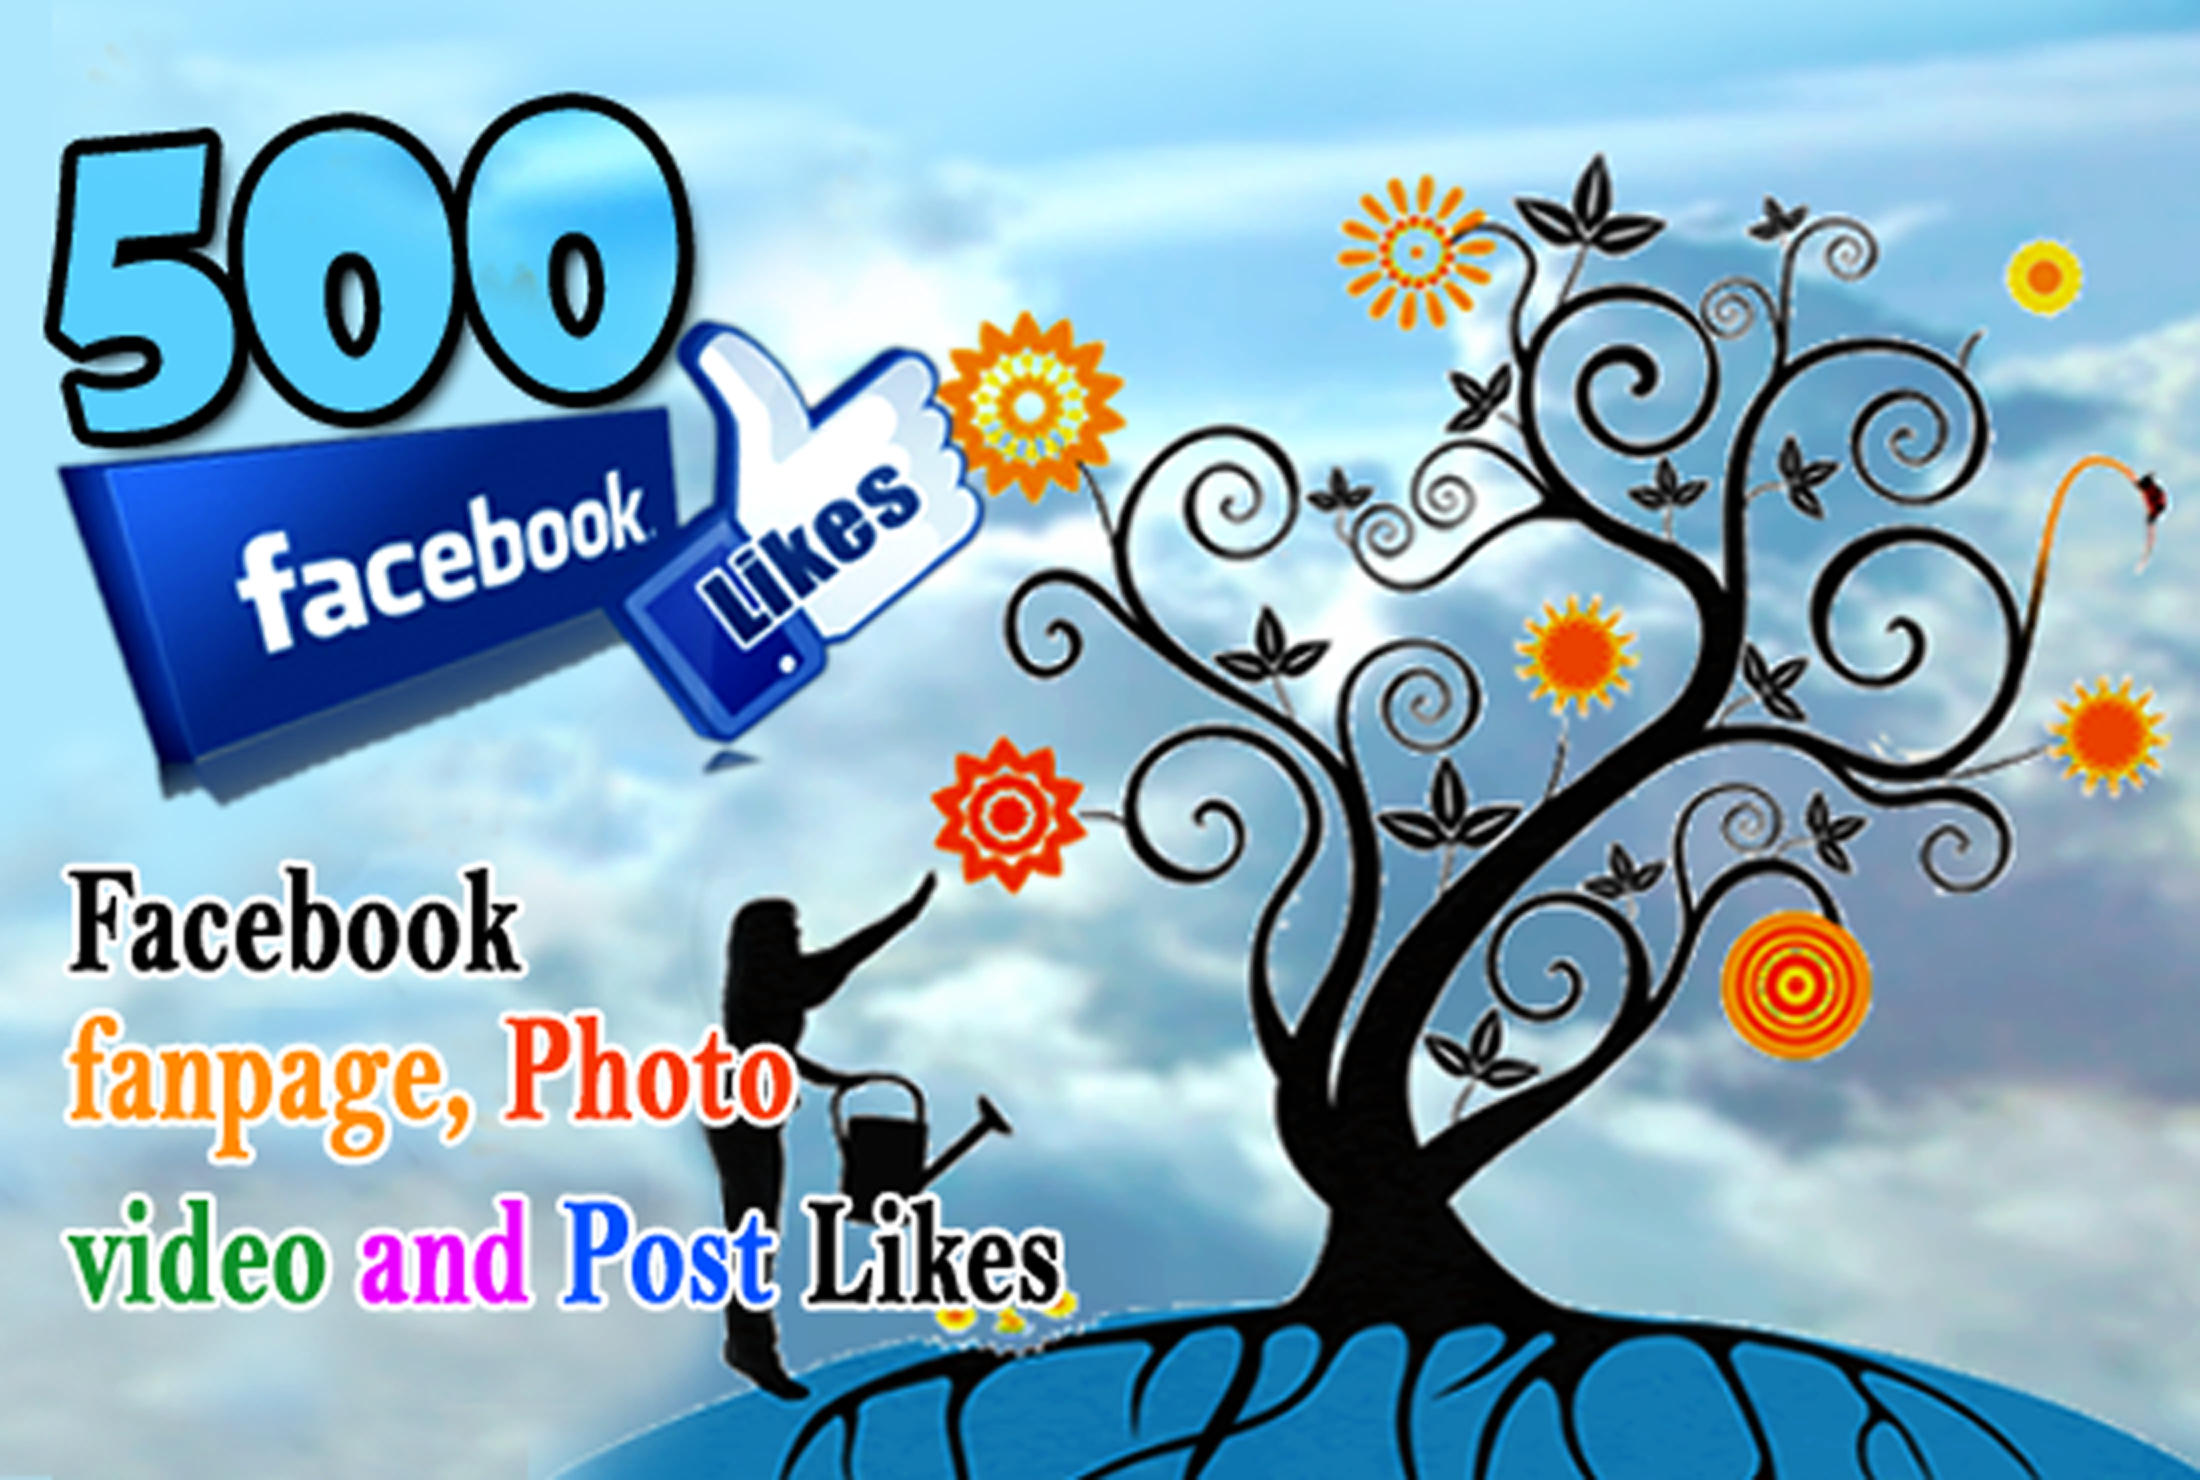 increase 500 Likes to your FACEBOOK Fan-page, Photos, Videos or Posts